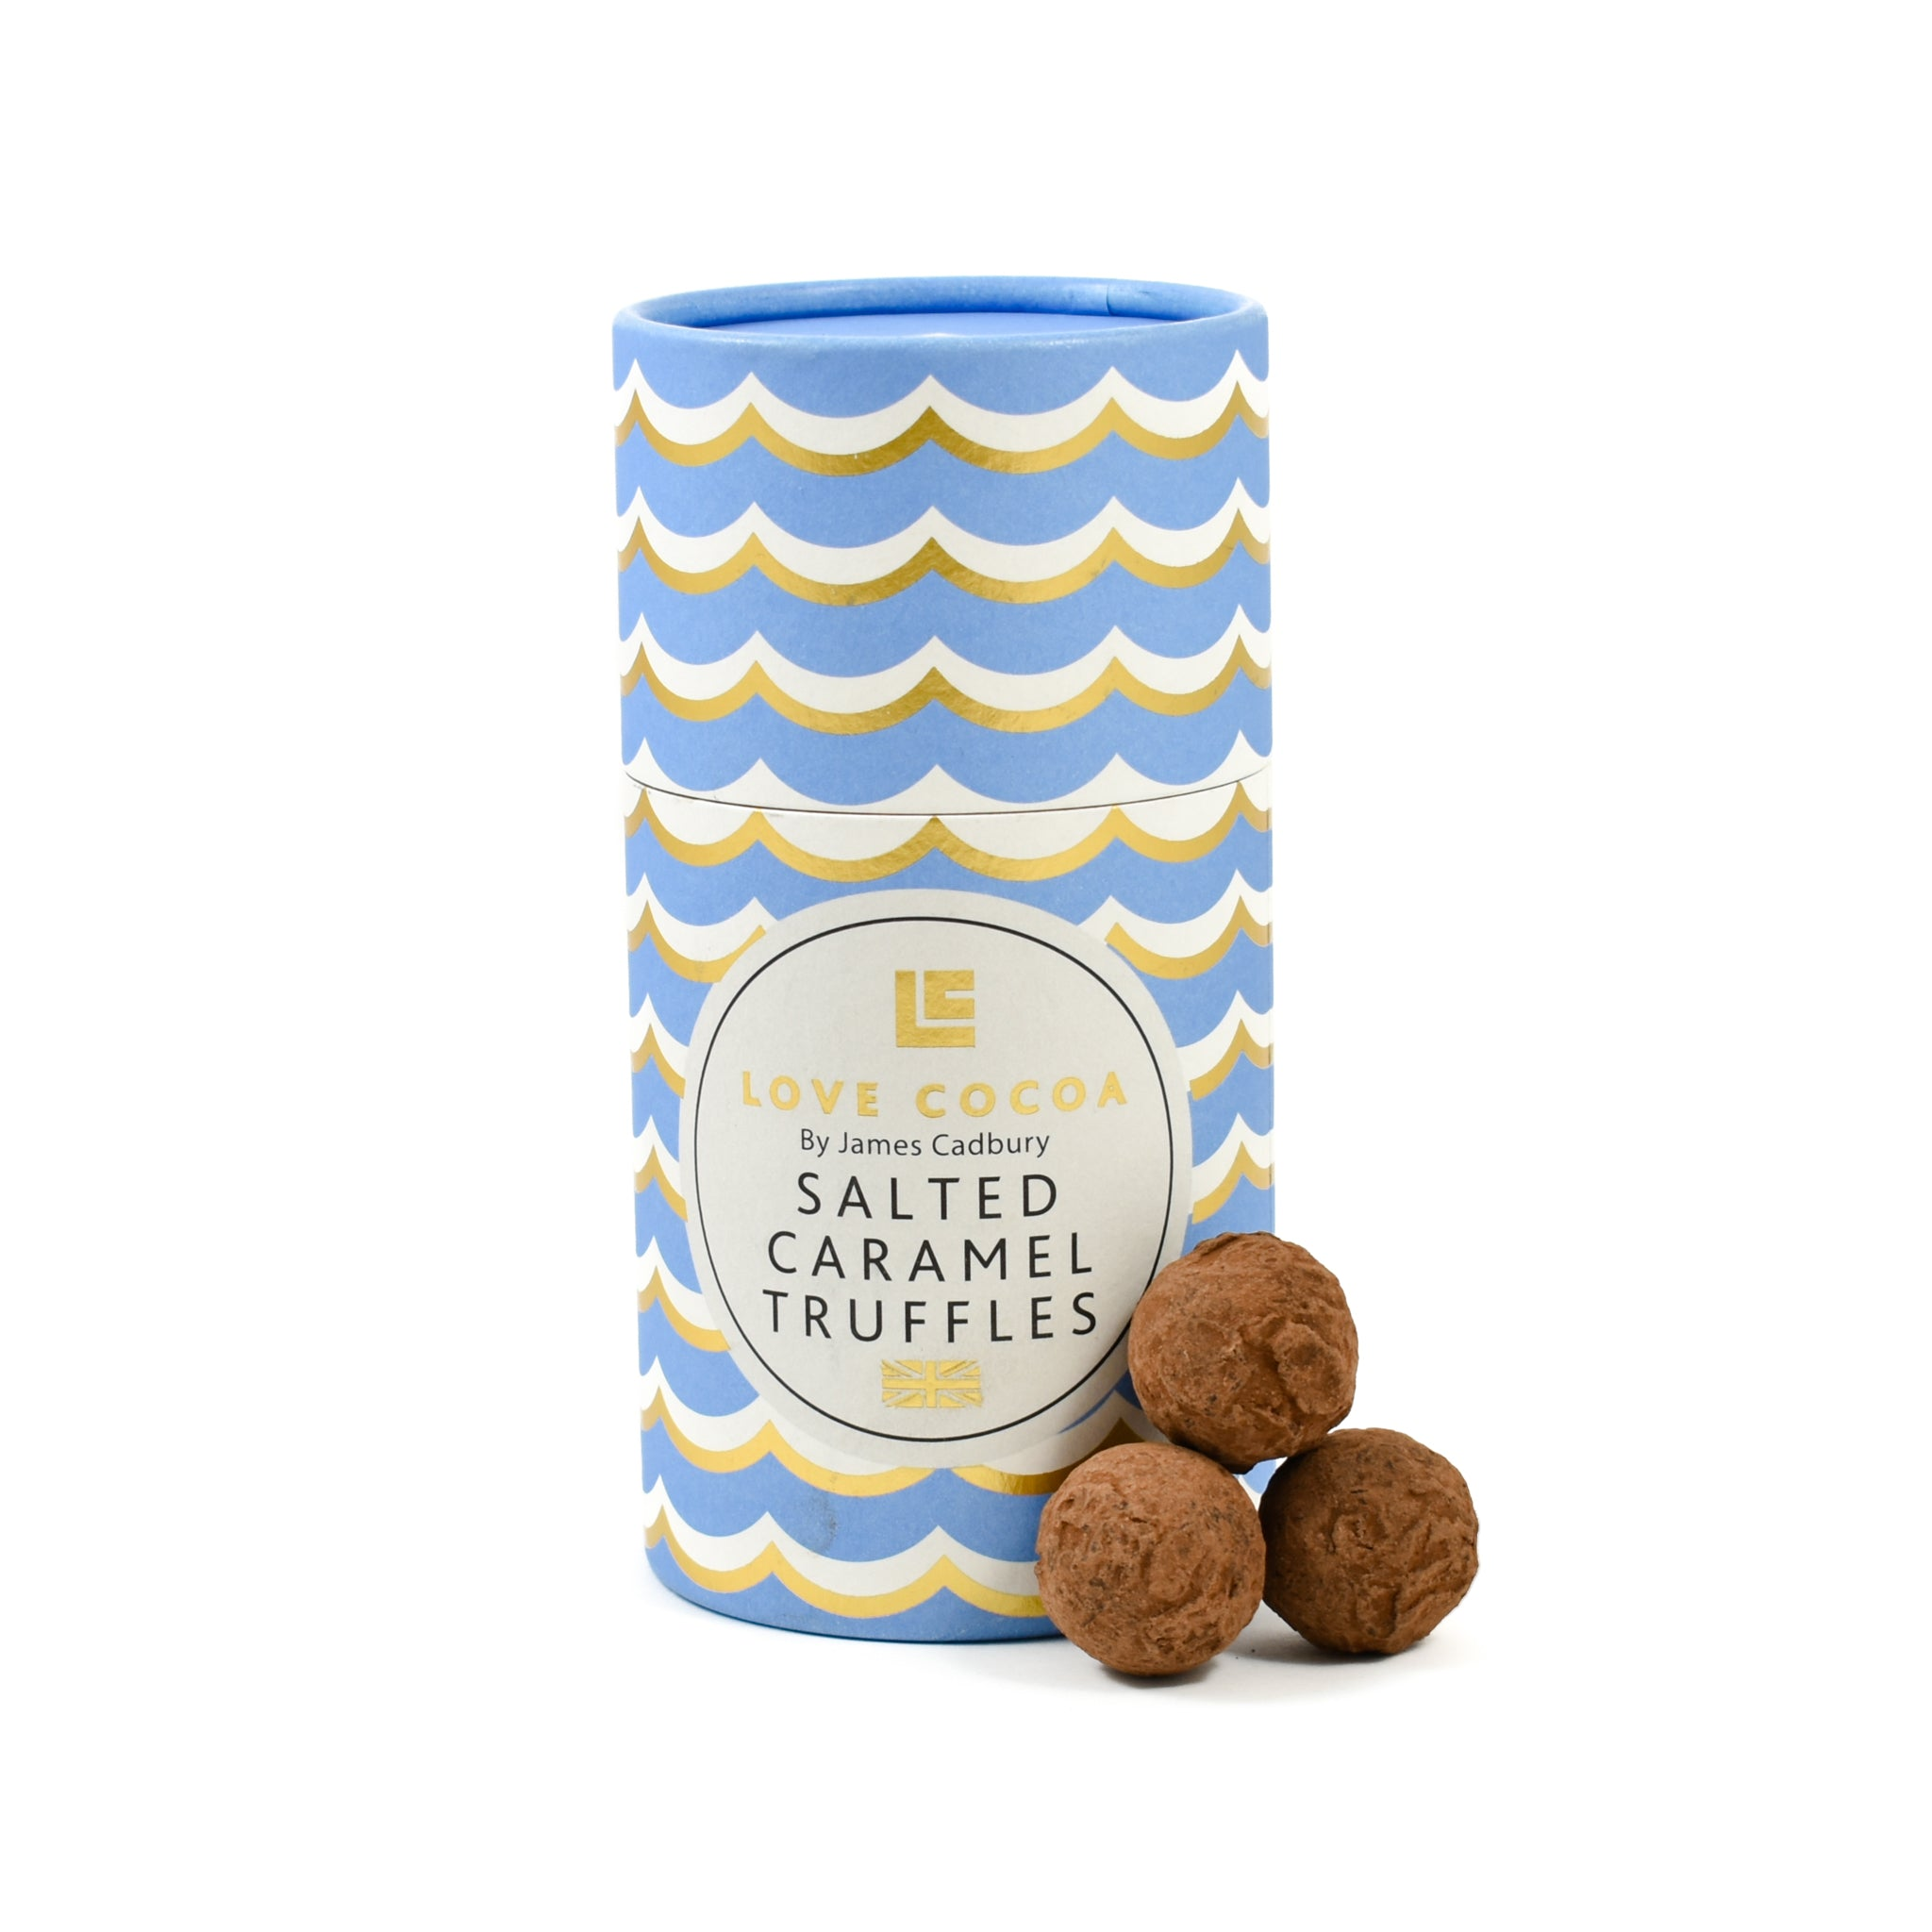 Love Cocoa Salted Caramel Truffles Luxury Gift Box 150g Ingredients Chocolate Bars & Confectionery